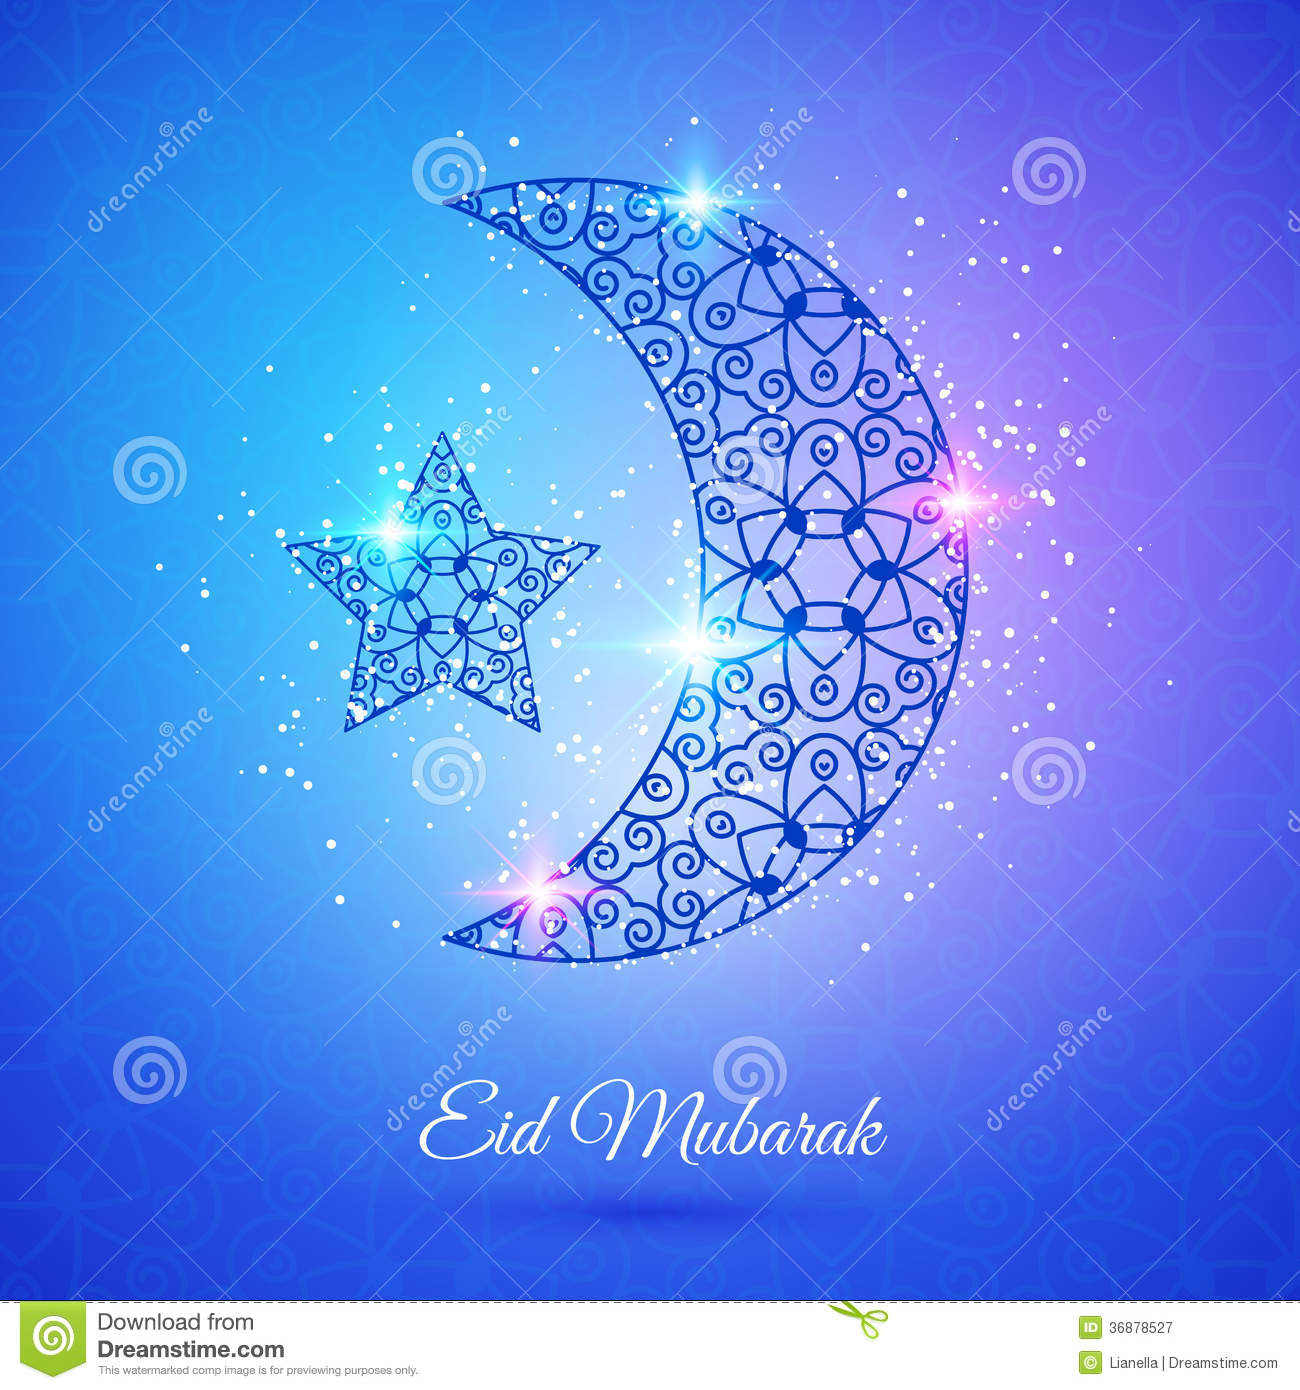 Moon for muslim community festival eid mubarak stock vector moon for muslim community festival eid mubarak kristyandbryce Image collections